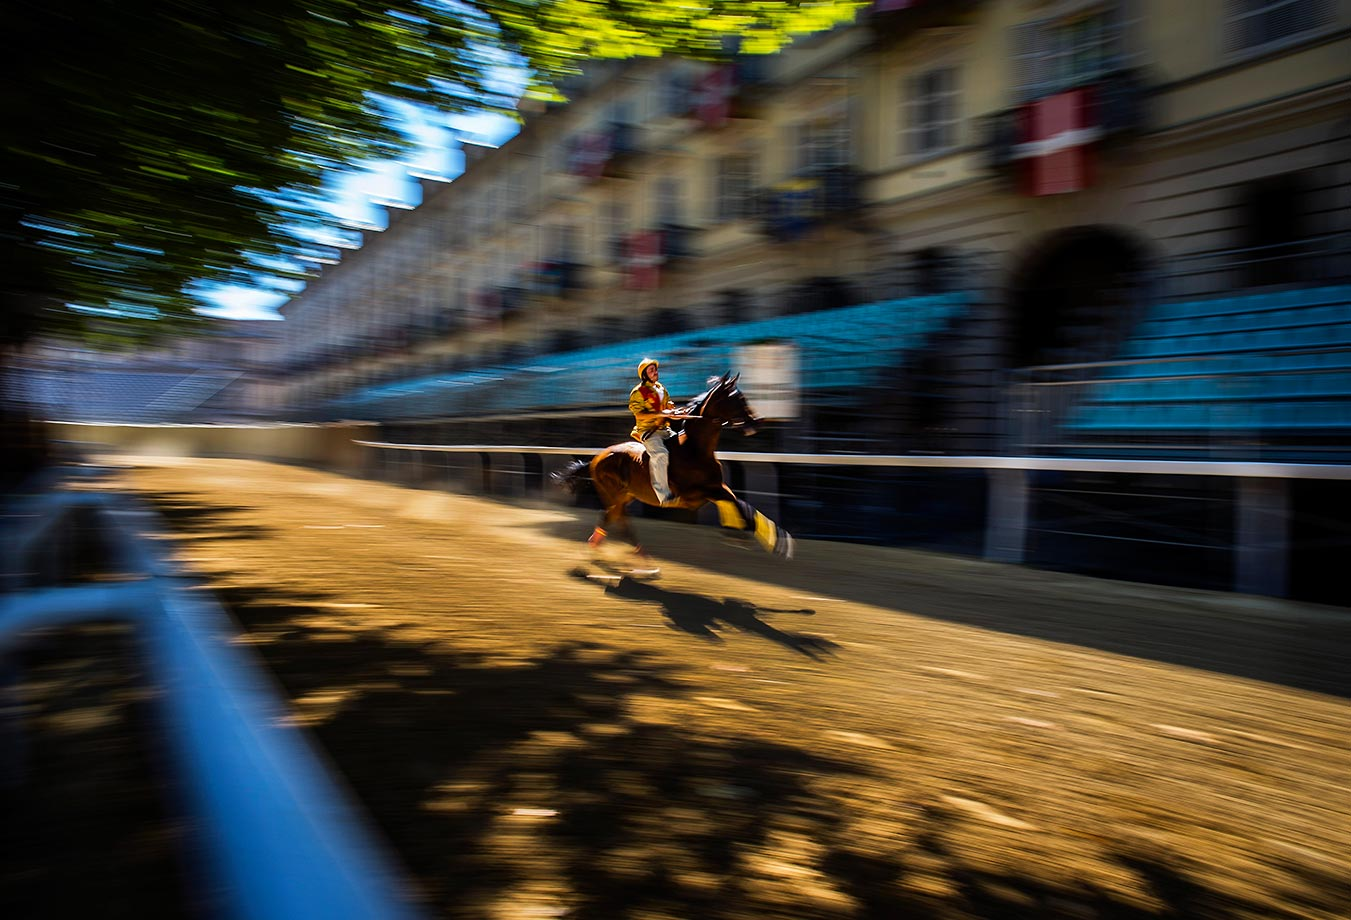 A horse warms up for the trials ahead of the Palio Di Asti in Italy.